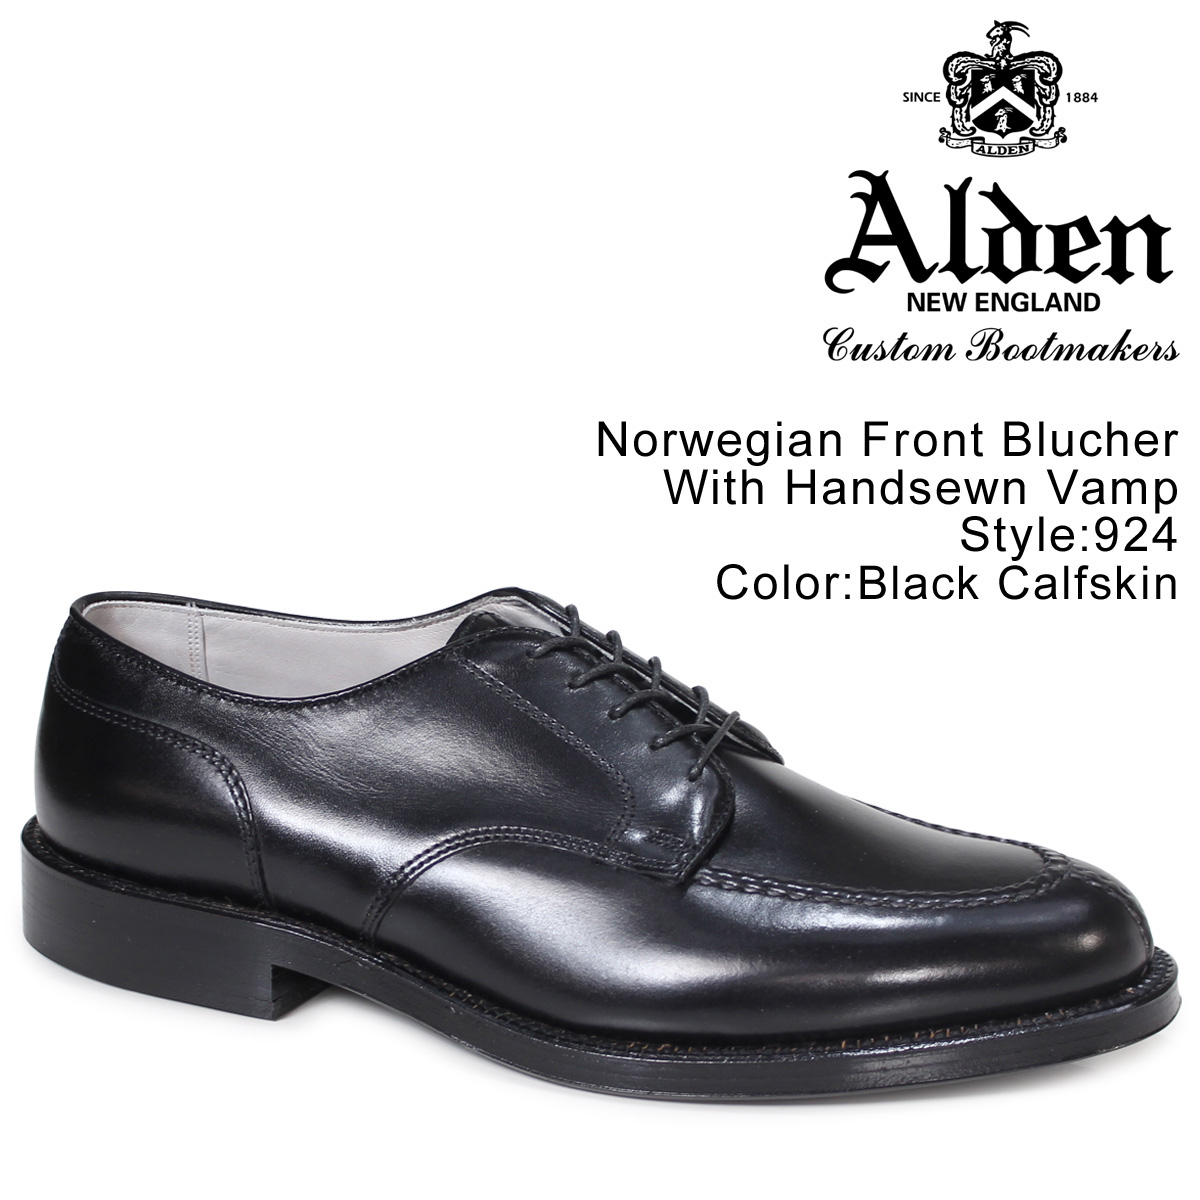 オールデン ALDEN シューズ メンズ NORWEGIAN FRONT BLUCHER WITH HANDSEWN VAMP Dワイズ 924